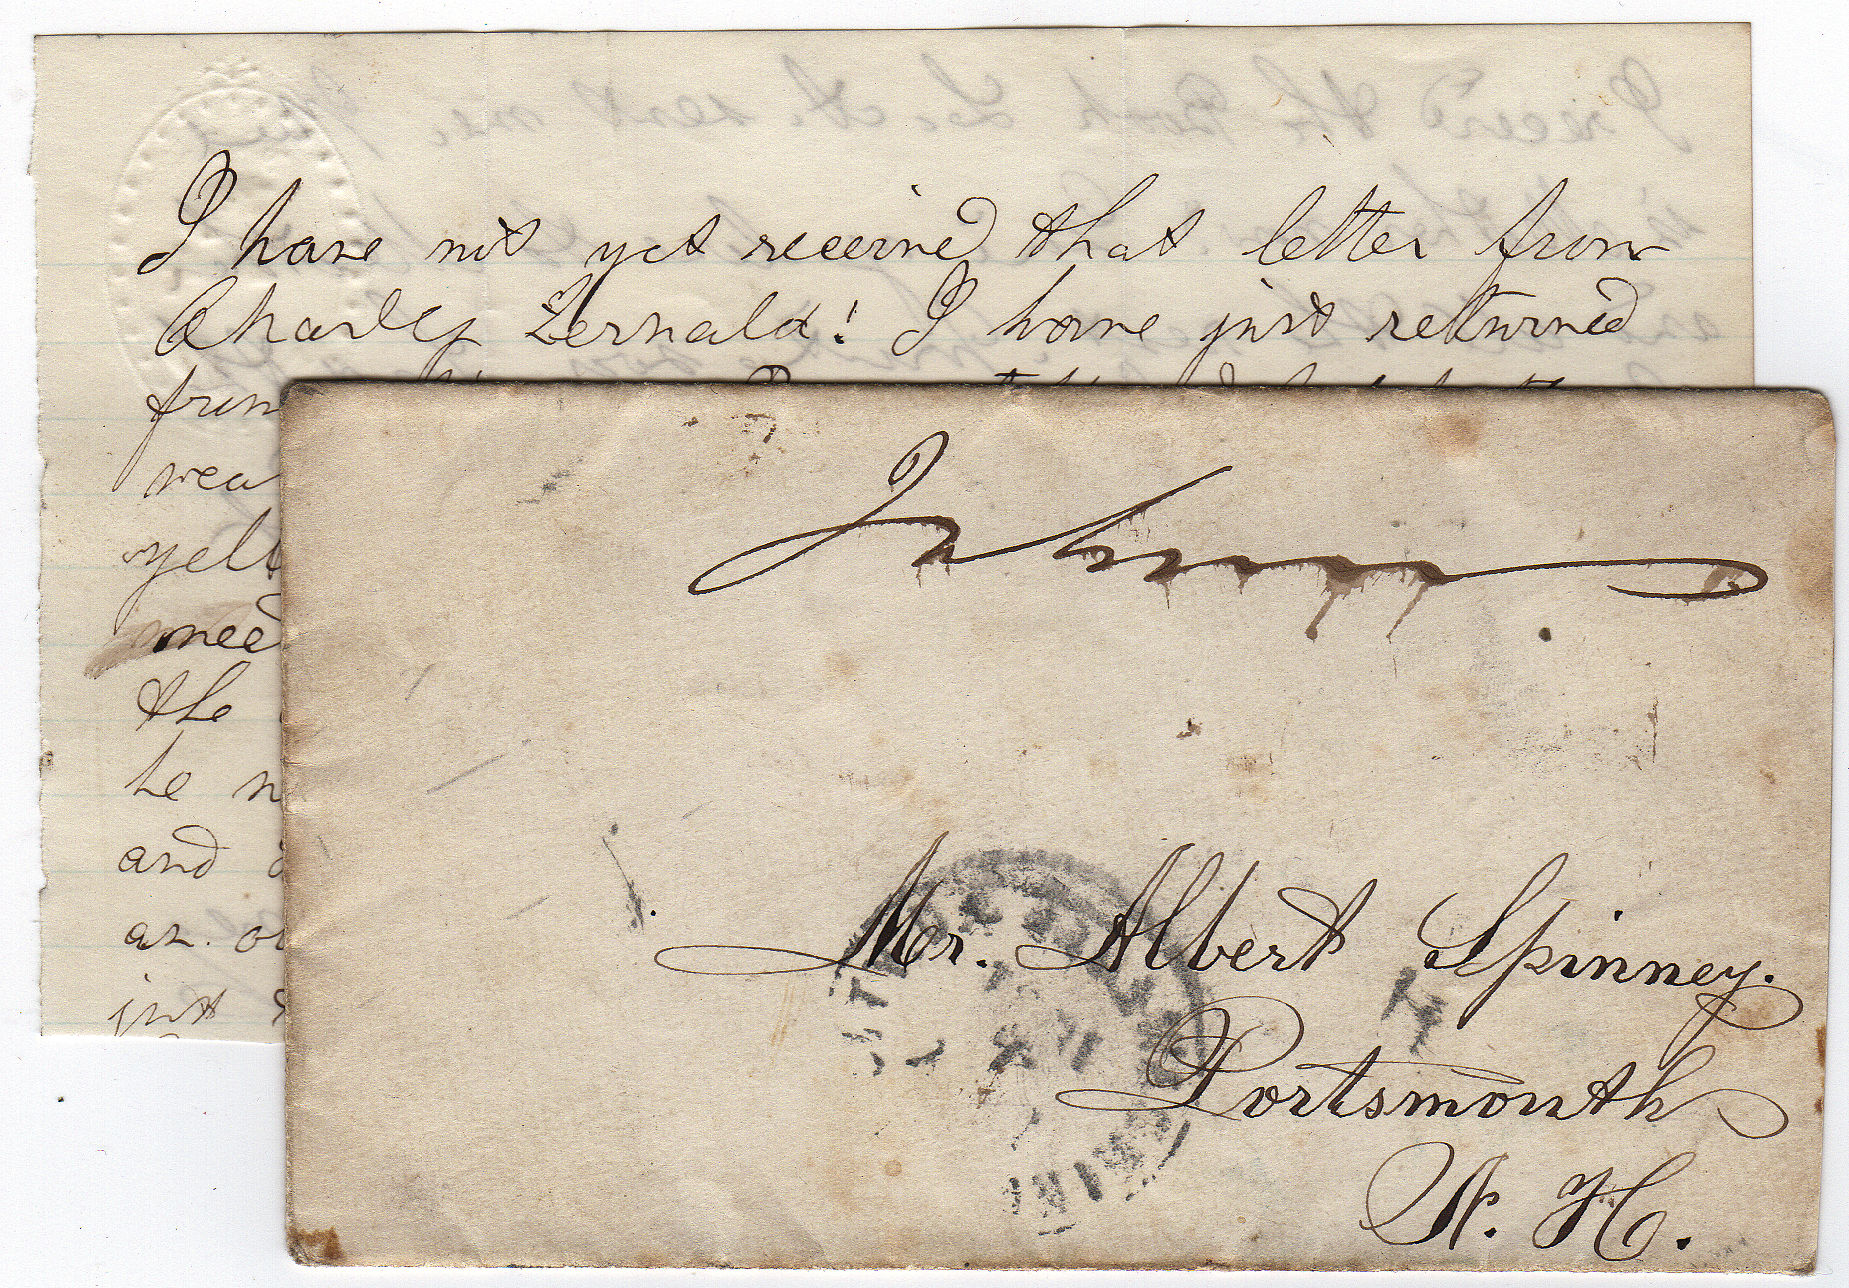 Collection of six Civil War letters from a sol r who served from